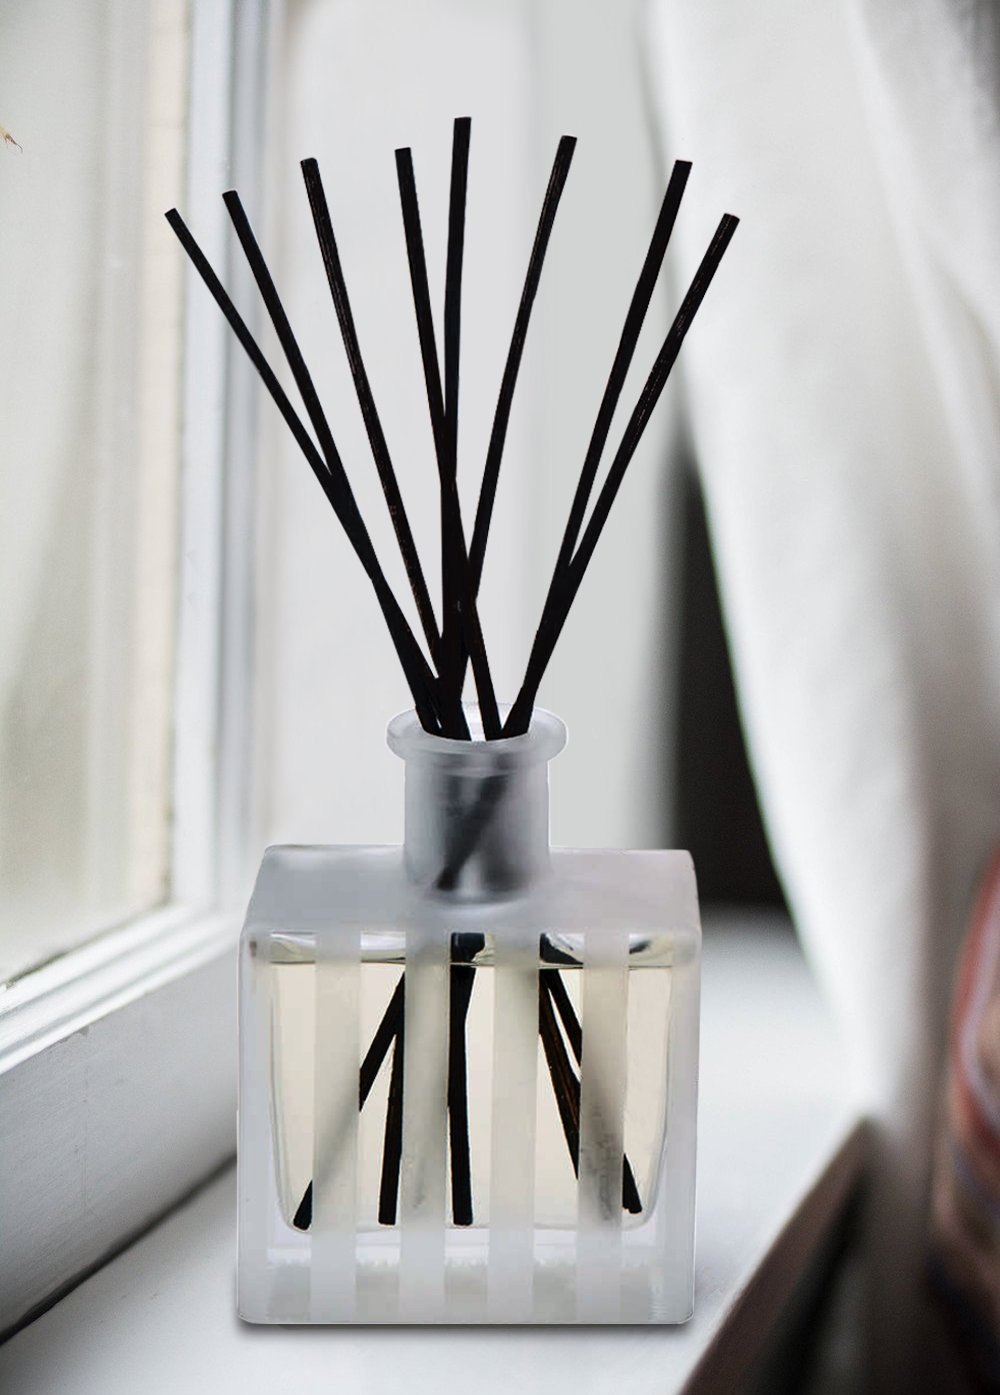 LOVSPA White Tea Reed Diffuser - Scented Sticks Set - Soothing White Tea Scent Infused with Notes of Woody Cedar and Vanilla - Air Freshener for Large Rooms - Made in The USA by LOVSPA (Image #6)